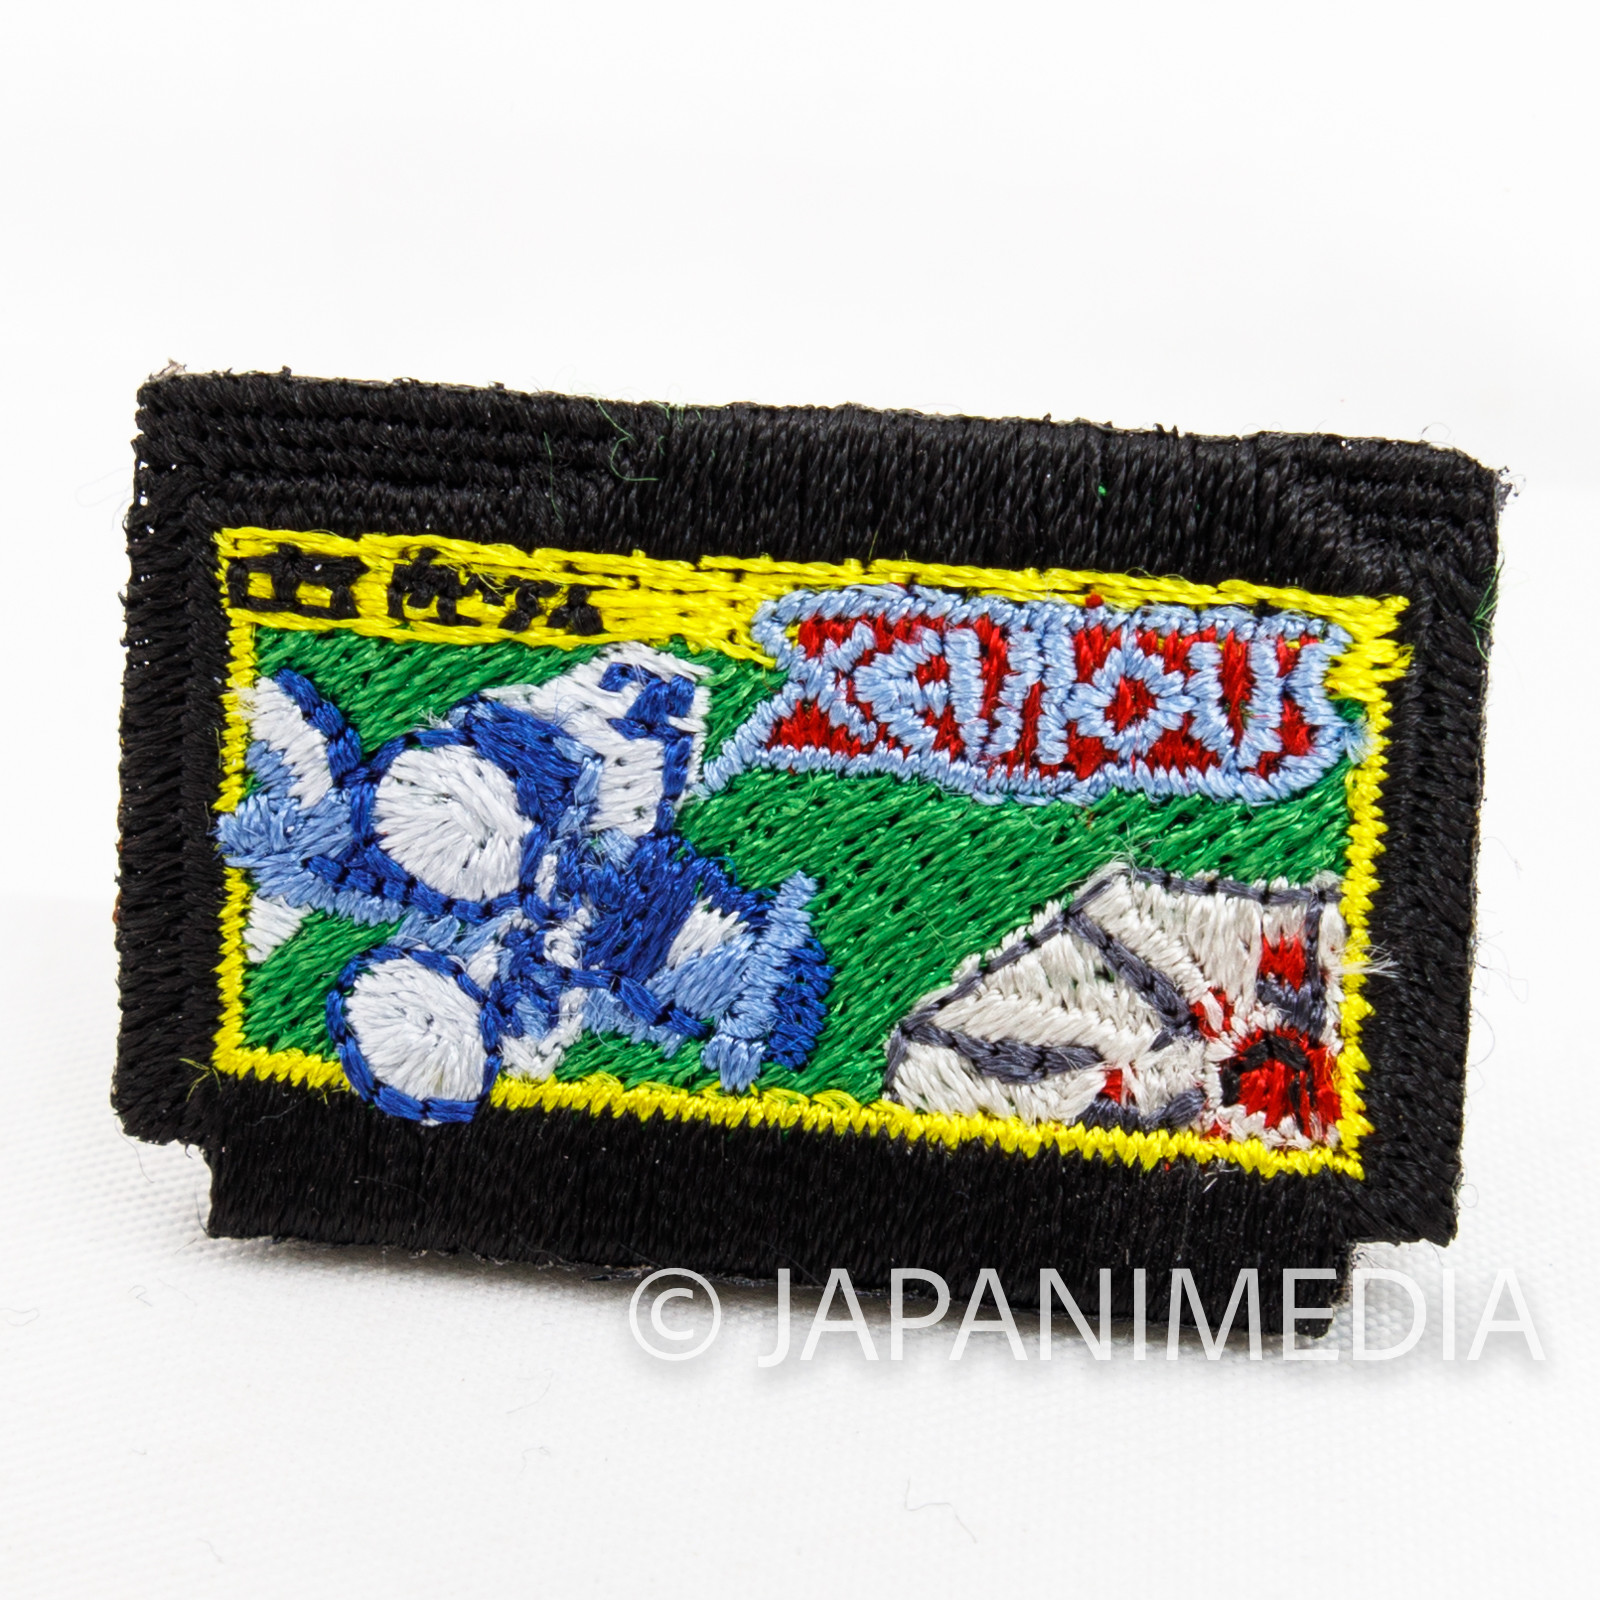 RARE! Xevious Famicom Cassette type Small Embroidery Pins Namco TOKYO PIXEL